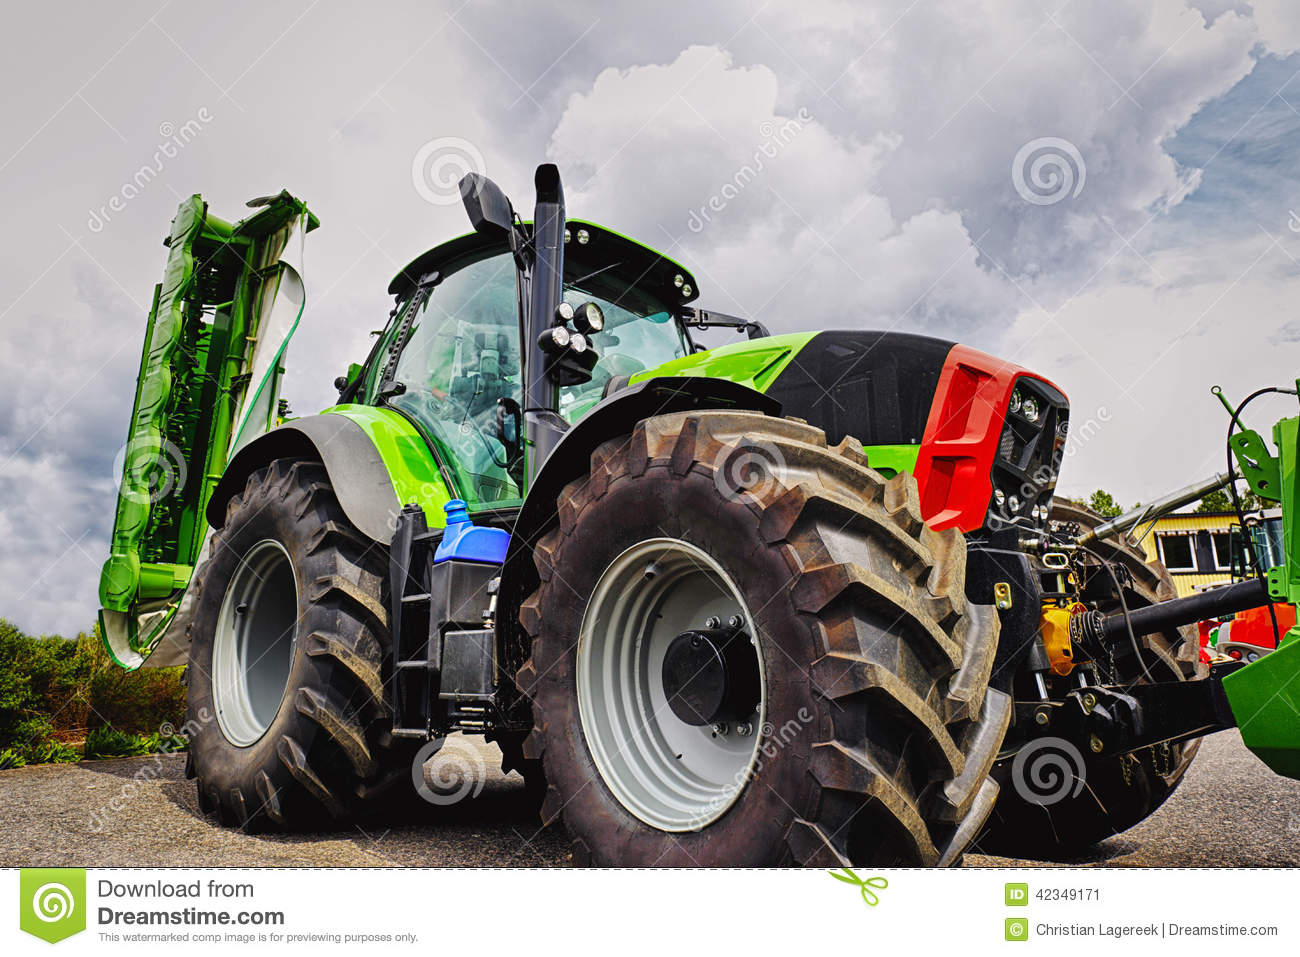 Large Tractor Wheels : Giant farming tractor tires and plough stock image